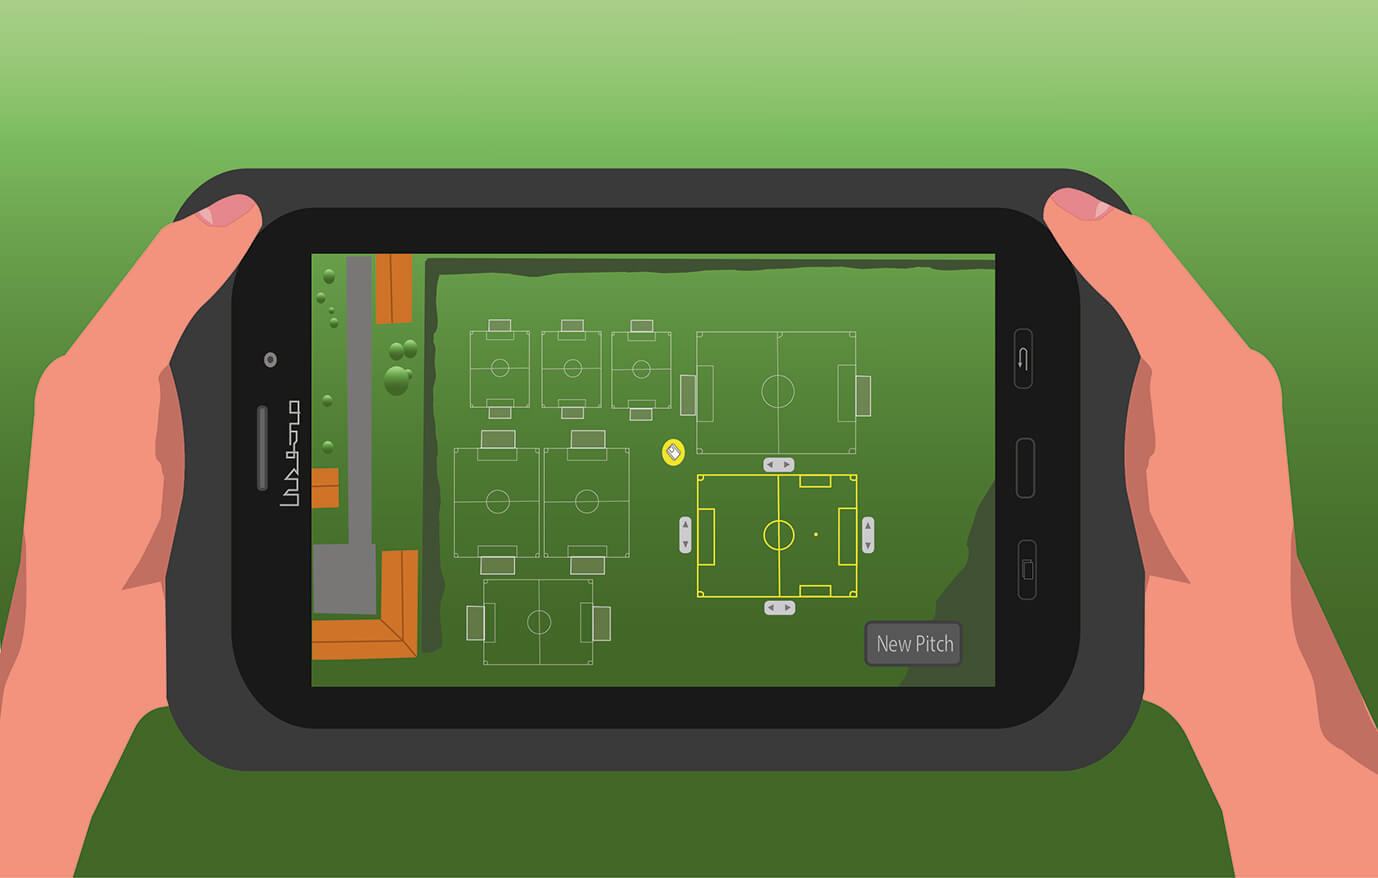 Adjusting sports pitches using the TinyLineMarker tablet